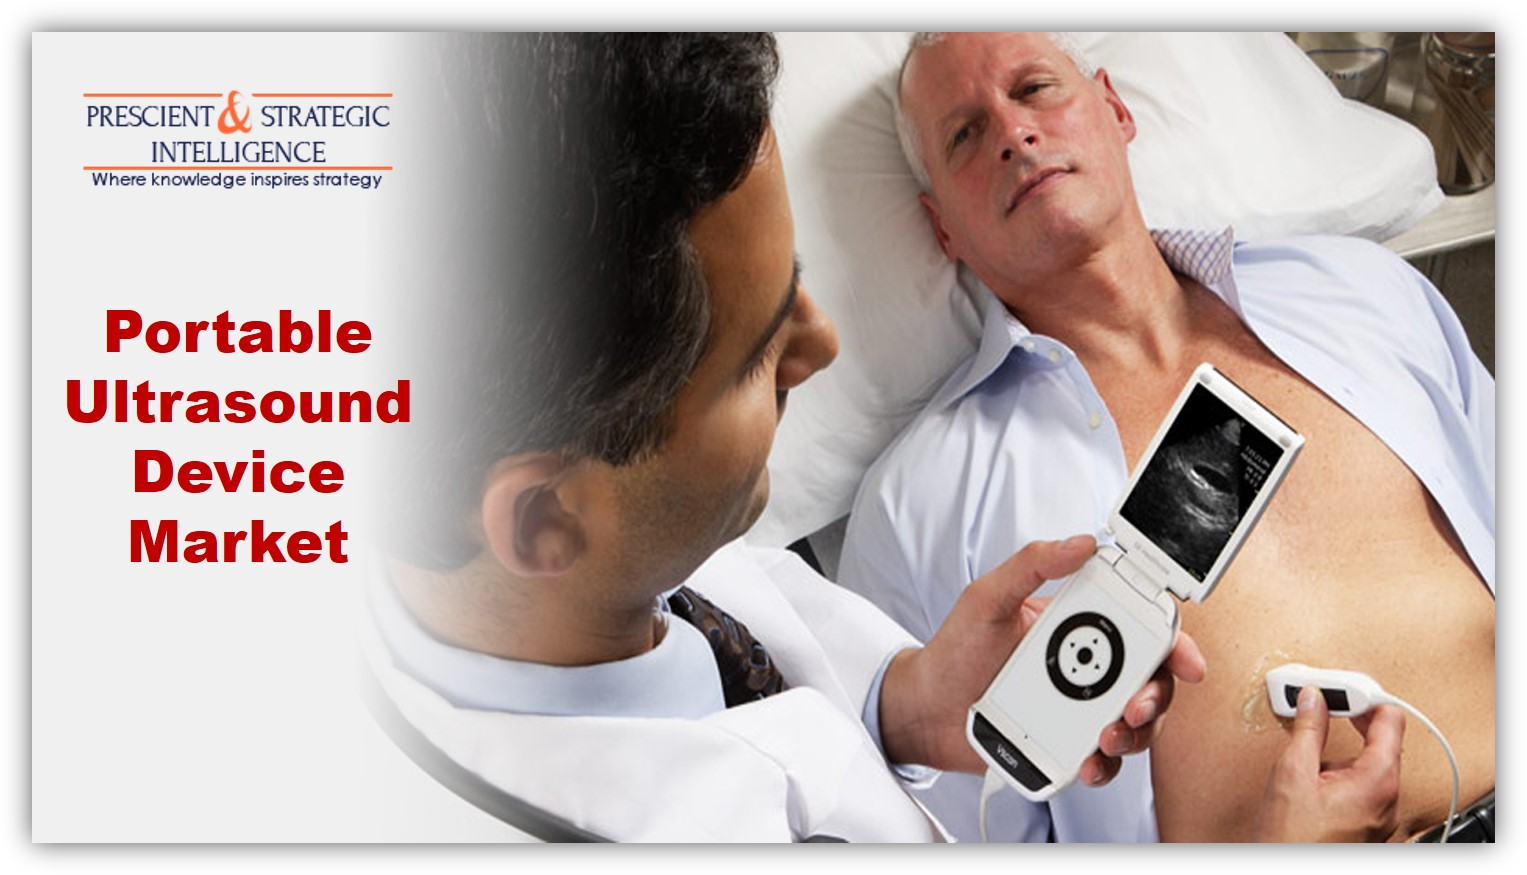 Rising Geriatric Population Driving Portable Ultrasound Device Market